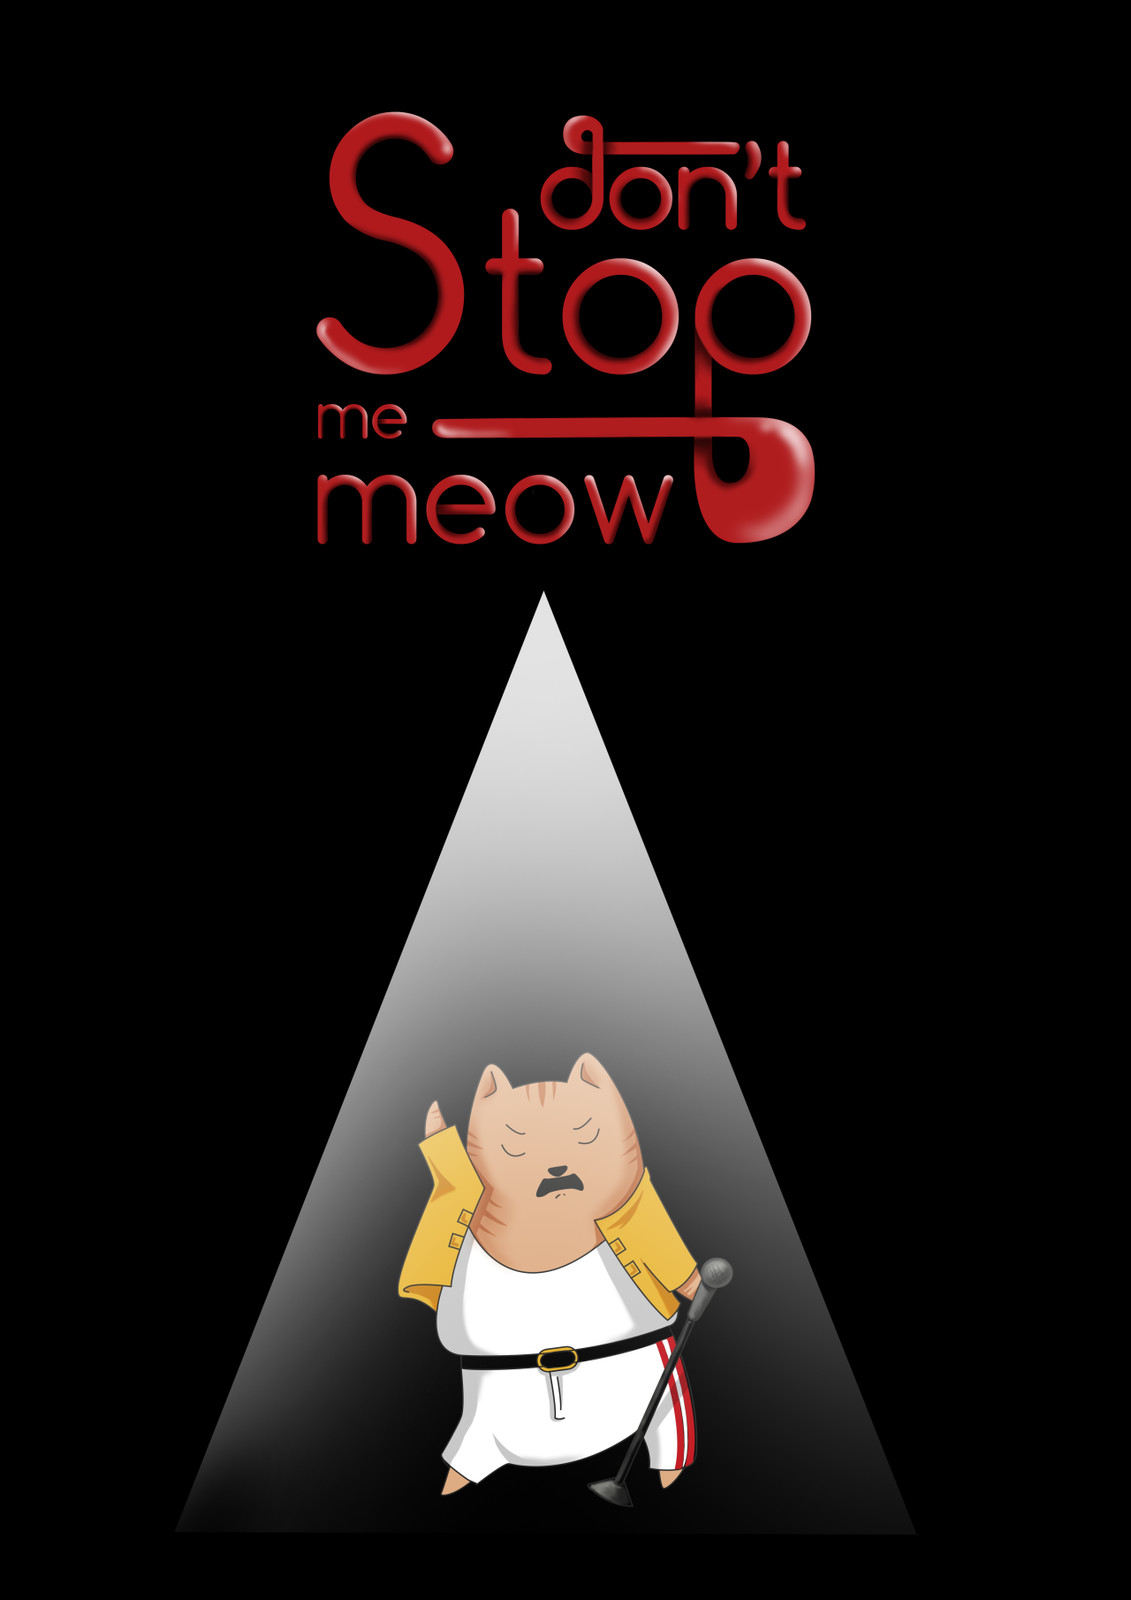 Don't stop me meow